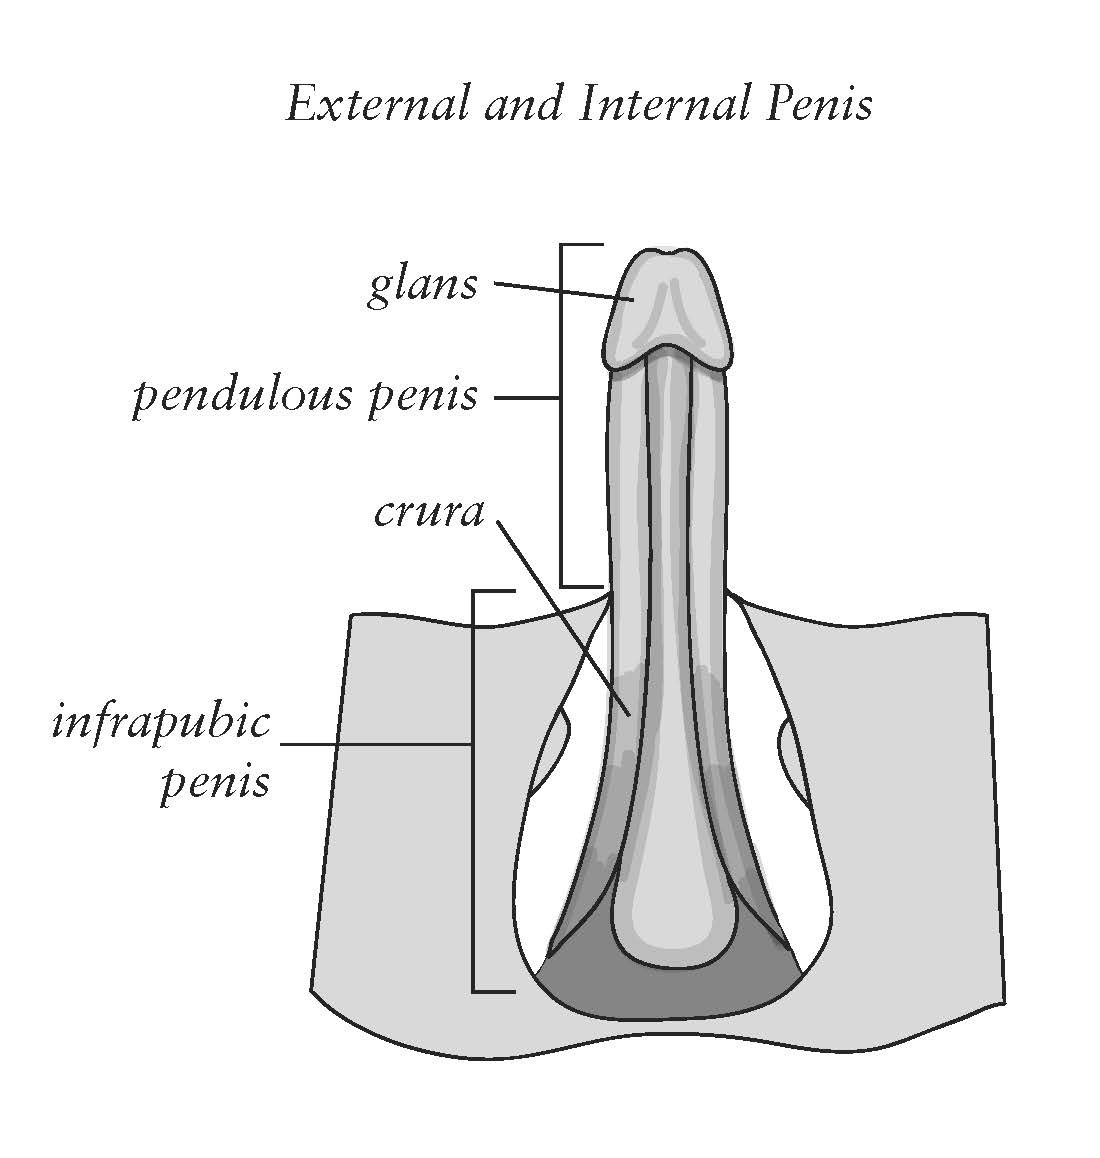 Hang penis floor, anal slits in skin